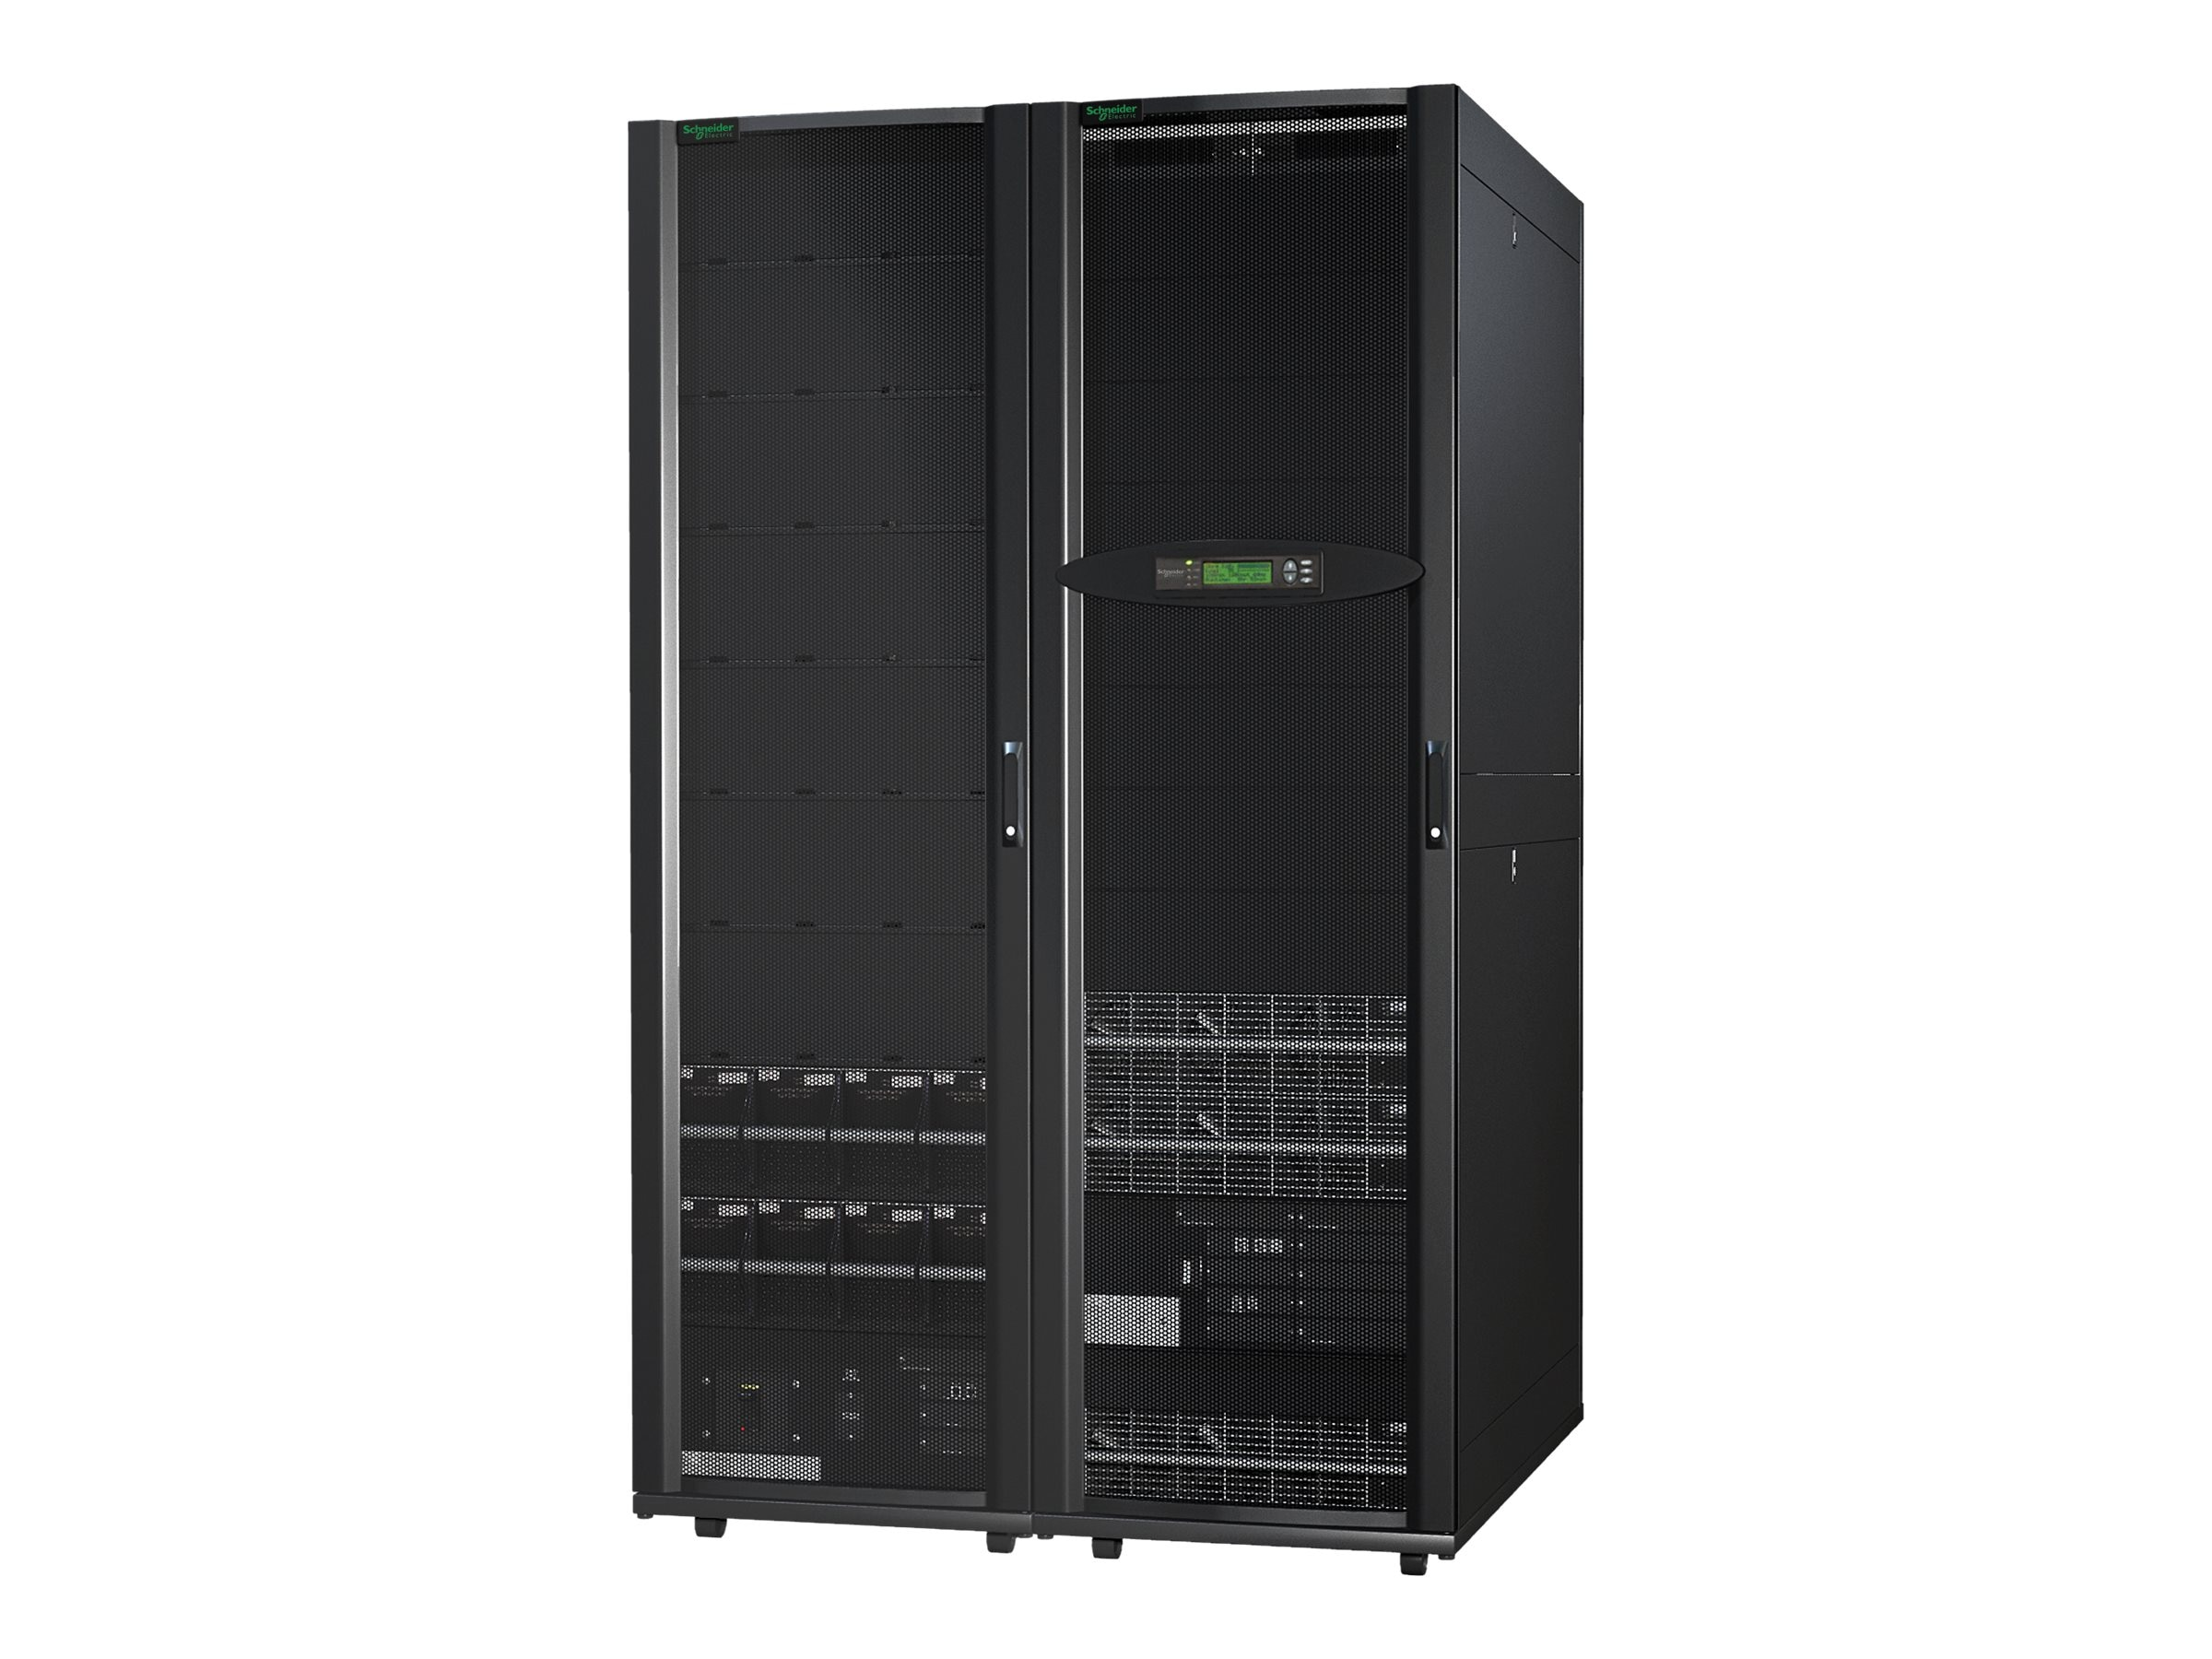 APC Symmetra PX 20kW Scalable to 100kW, 208V with Web SNMP Card, Startup, SY20K100F, 13336970, Battery Backup/UPS